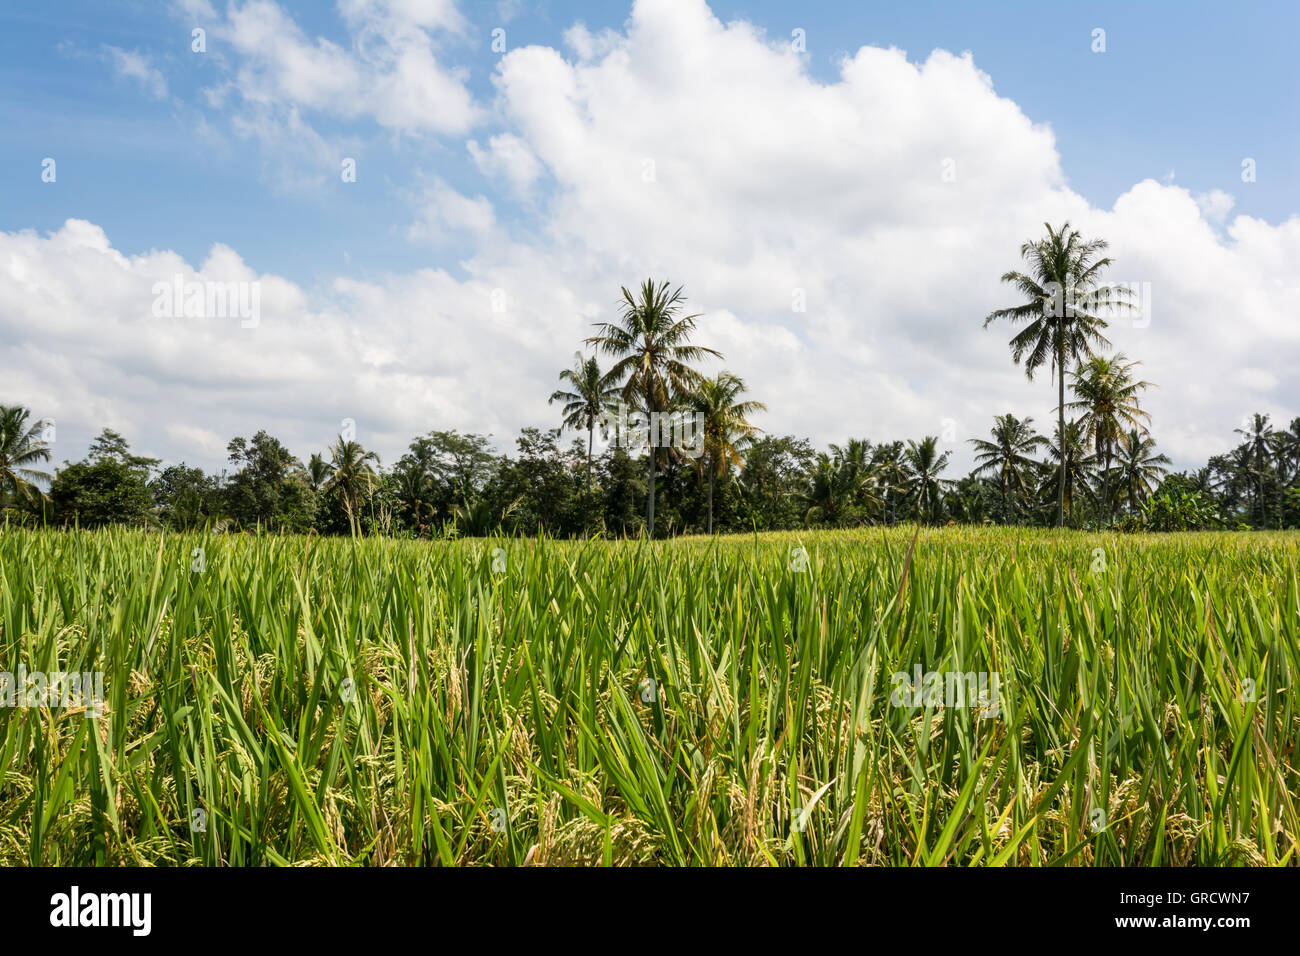 Landscape Image Of Rice Fields On Bali With Rice Plants In The Foreground Stock Photo